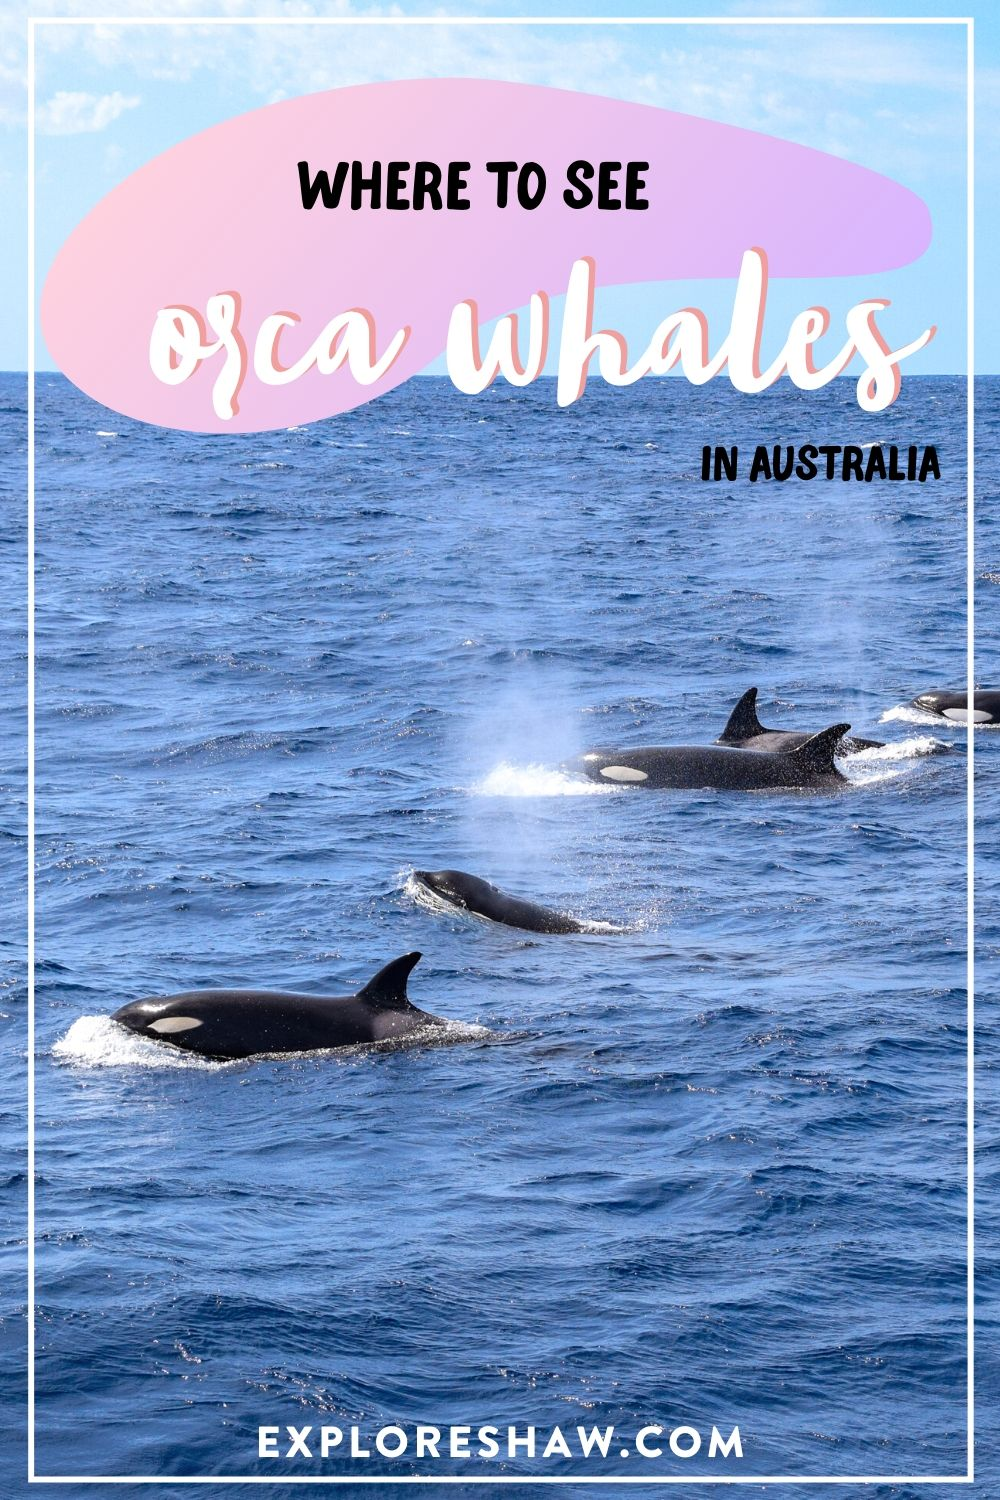 orca whales in australia